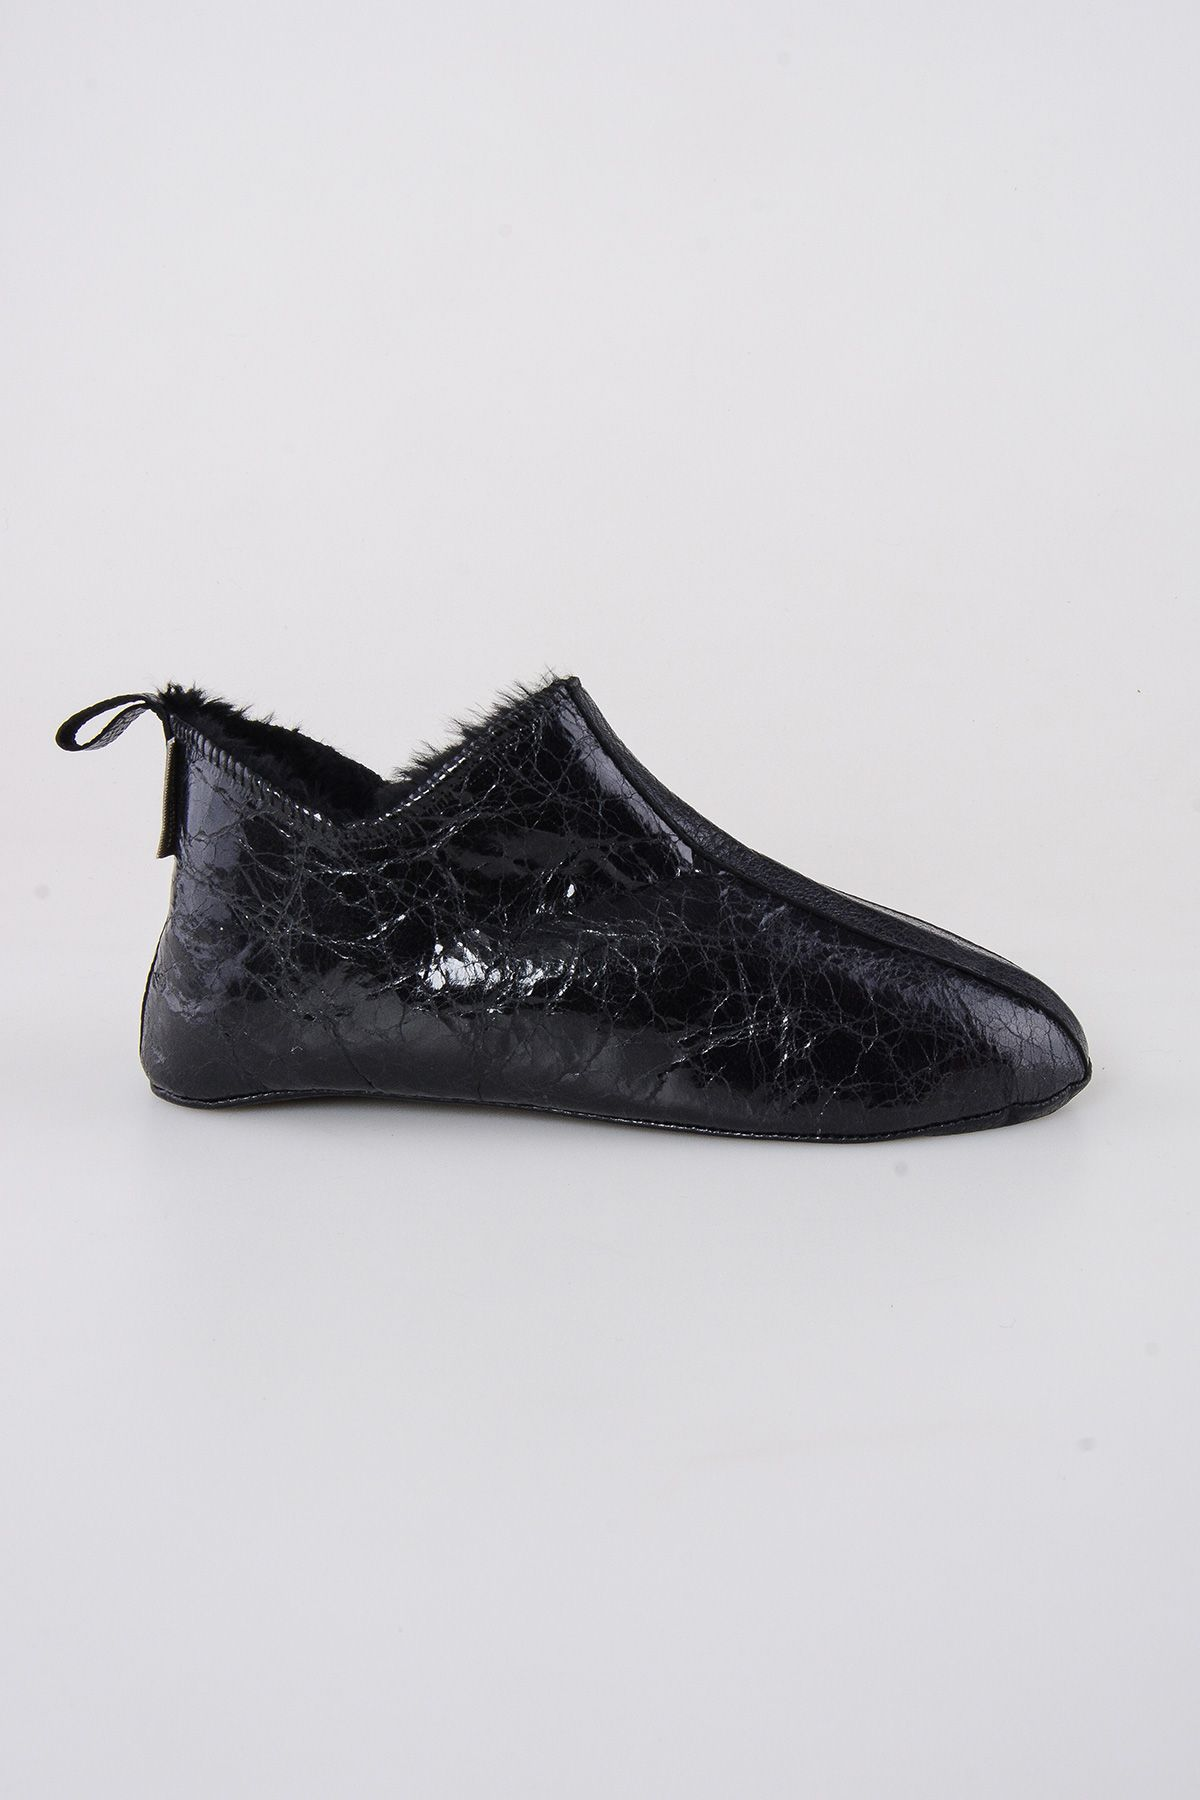 Pegia Shearling Men's House Shoes 111008 Black